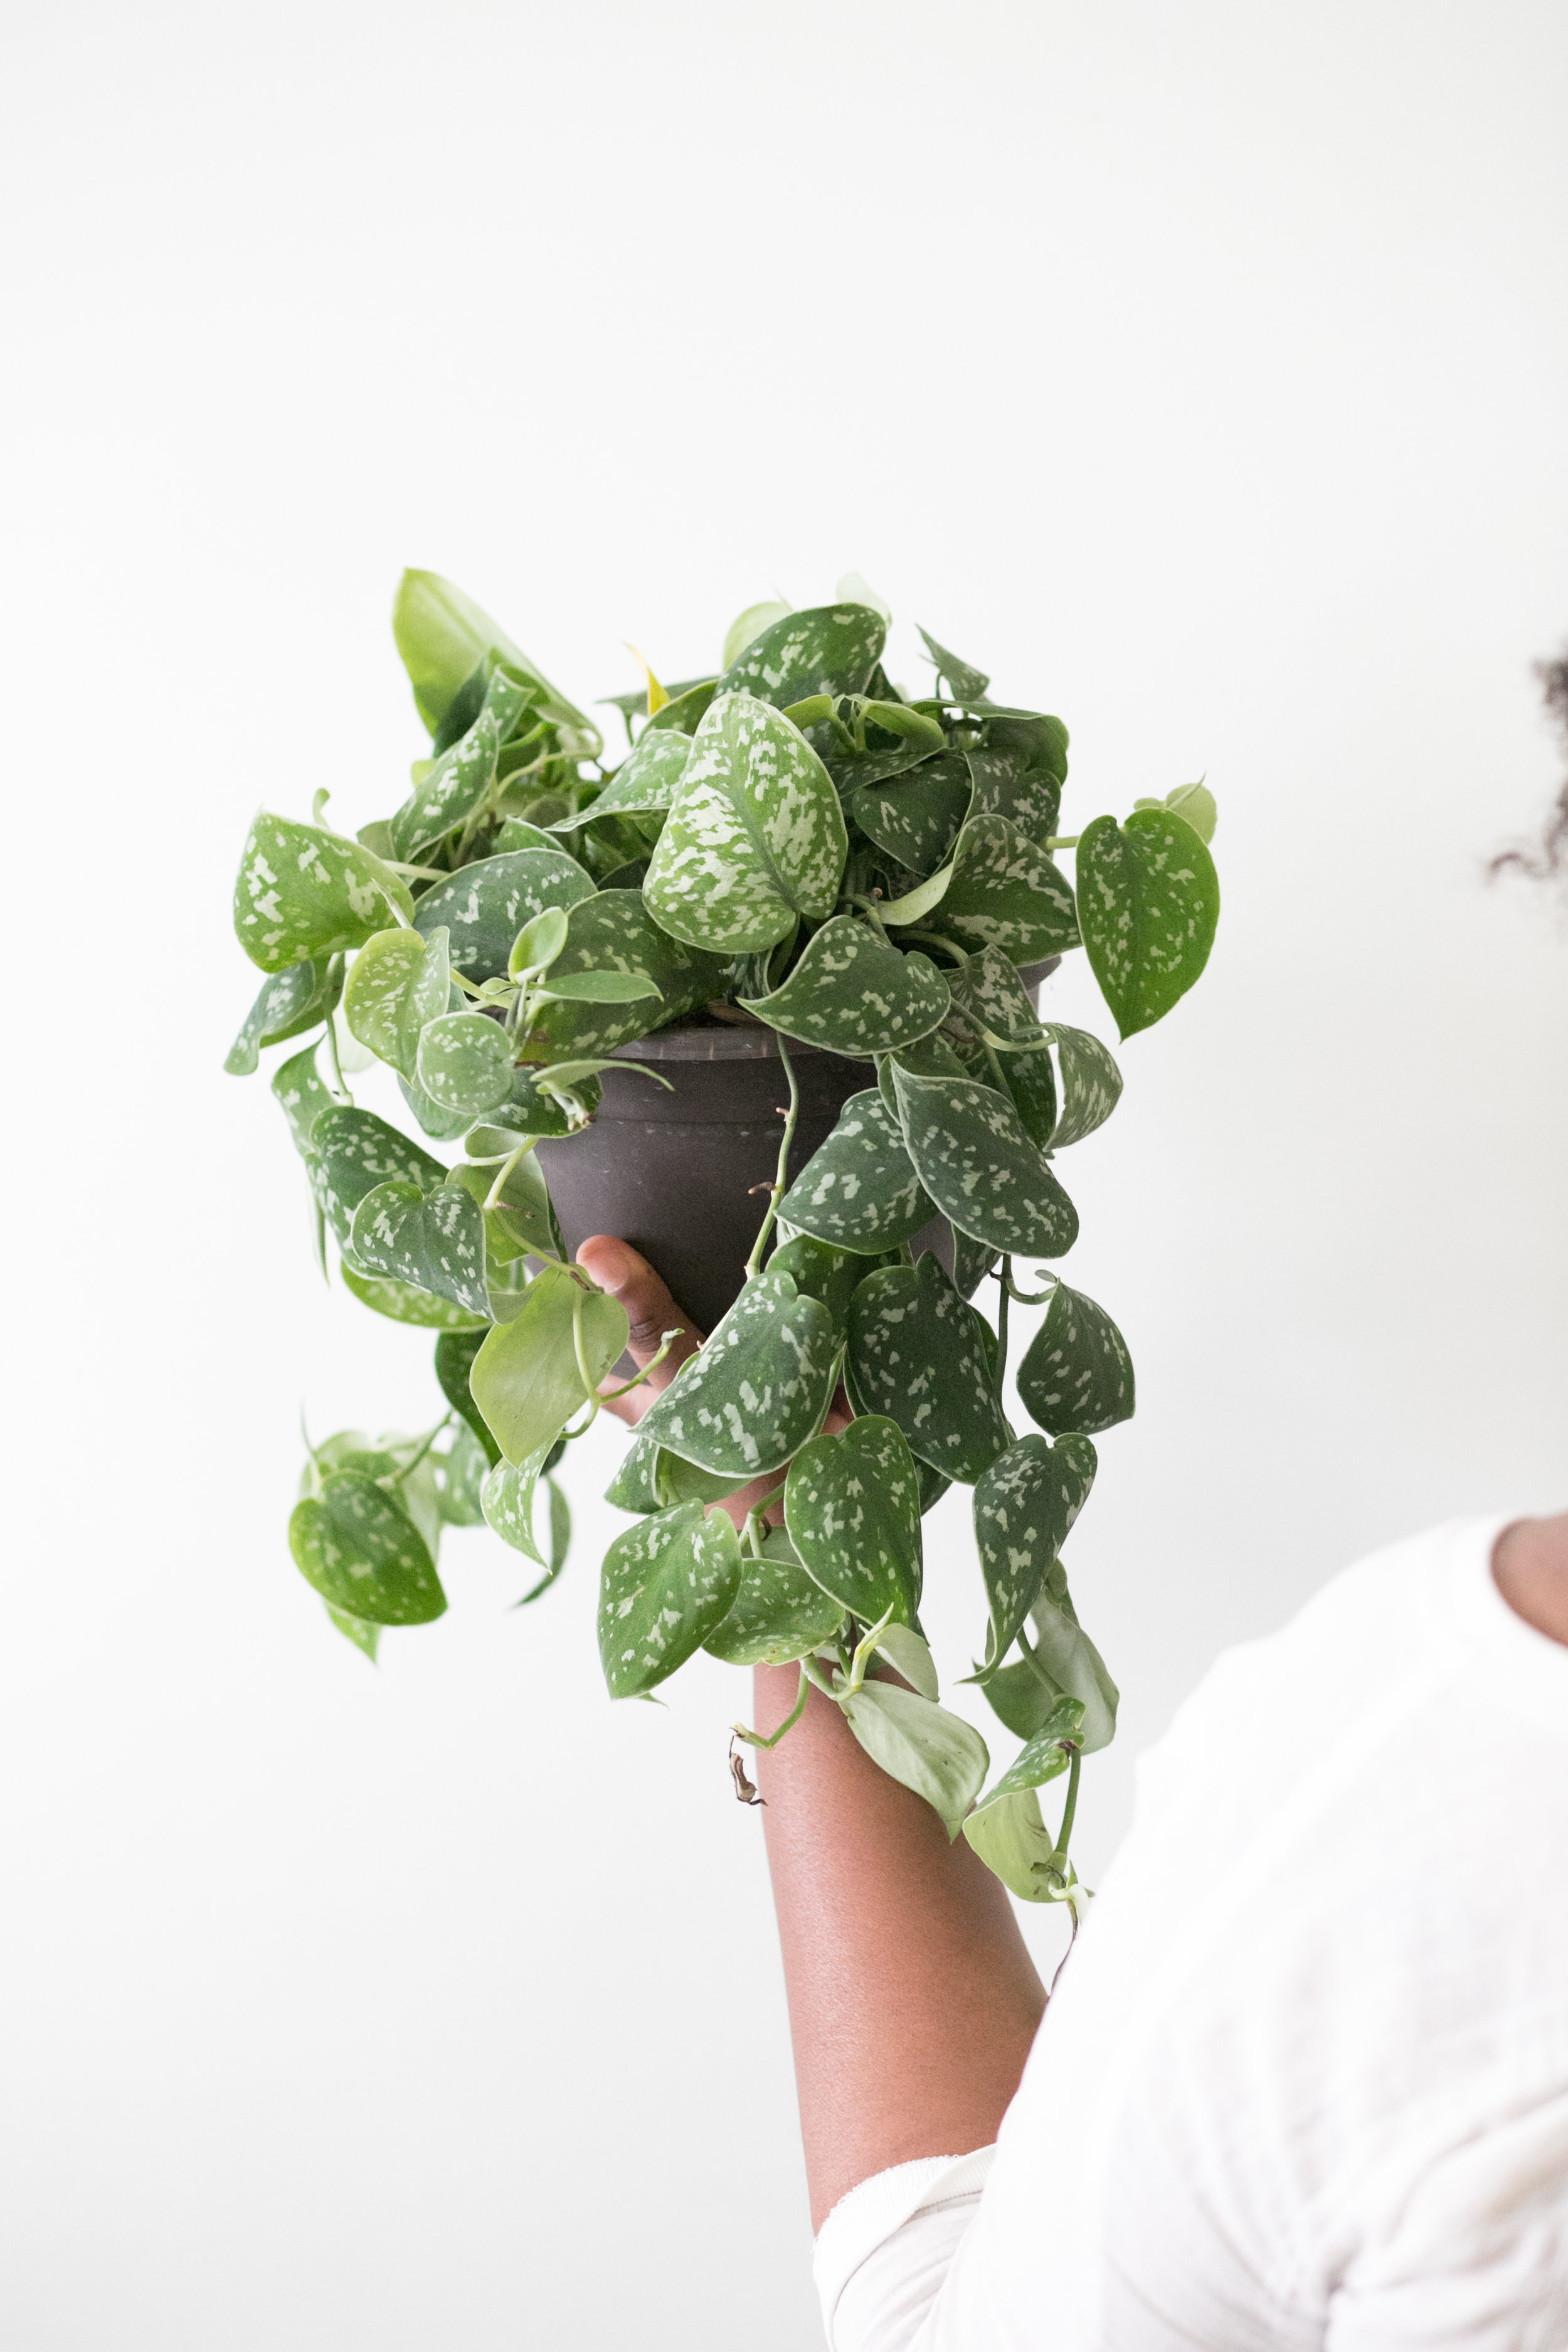 A humidity tray is the recommended tool for getting the right humidity for this plant; misting can cause insect and bacterial problems due to the velvety texture of the leaves.